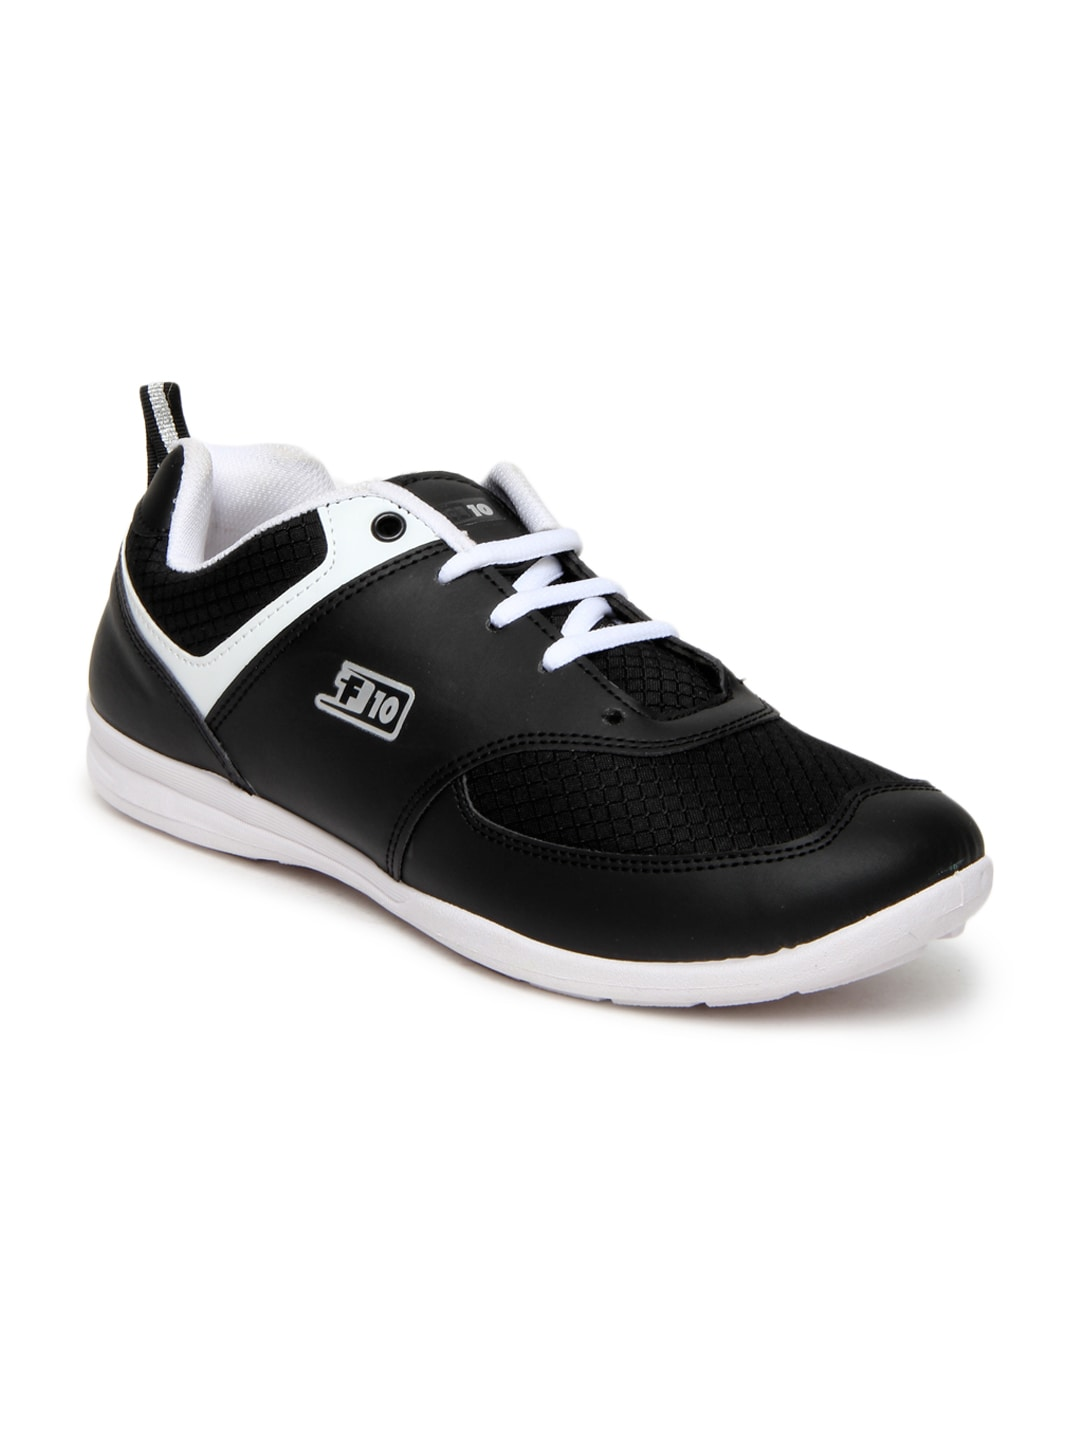 buy 10 by liberty black sports shoes 634